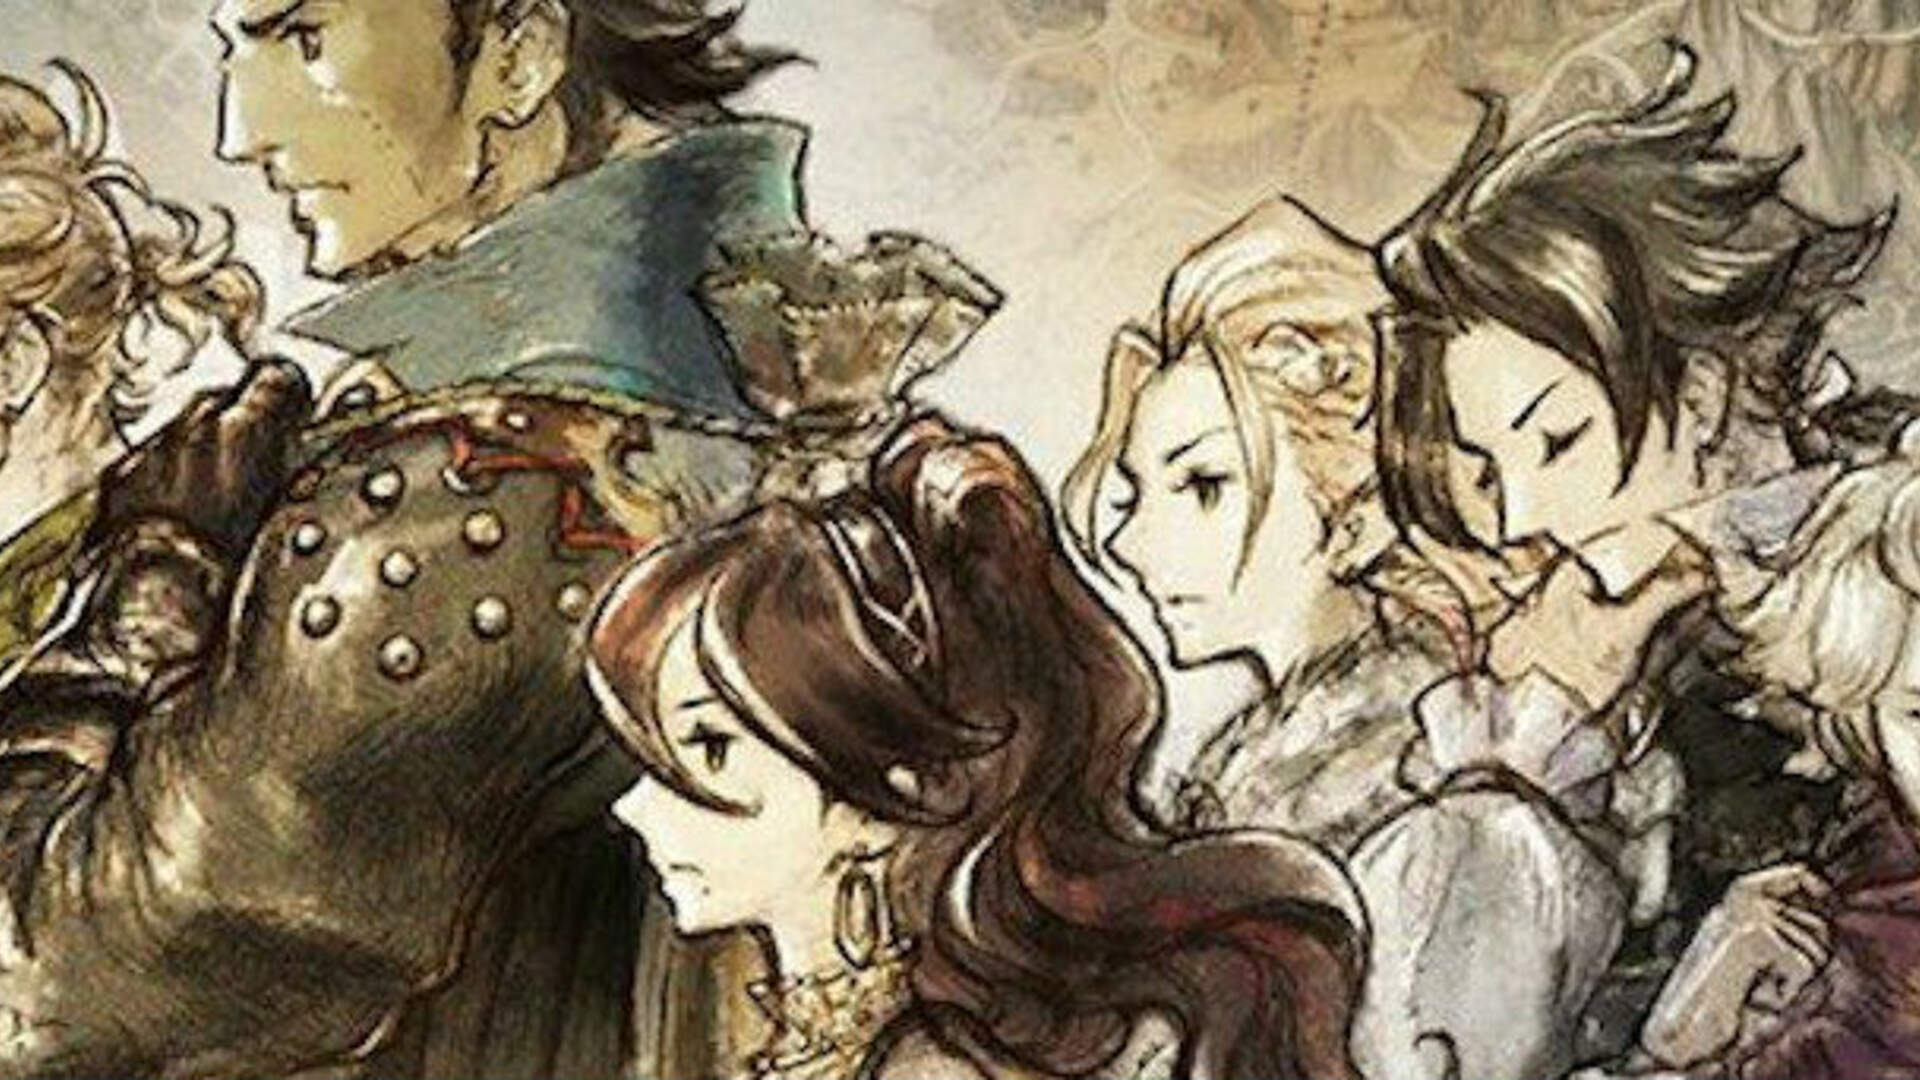 Nintendo Dominated July 2018 Thanks to Switch and Octopath Traveler Sales